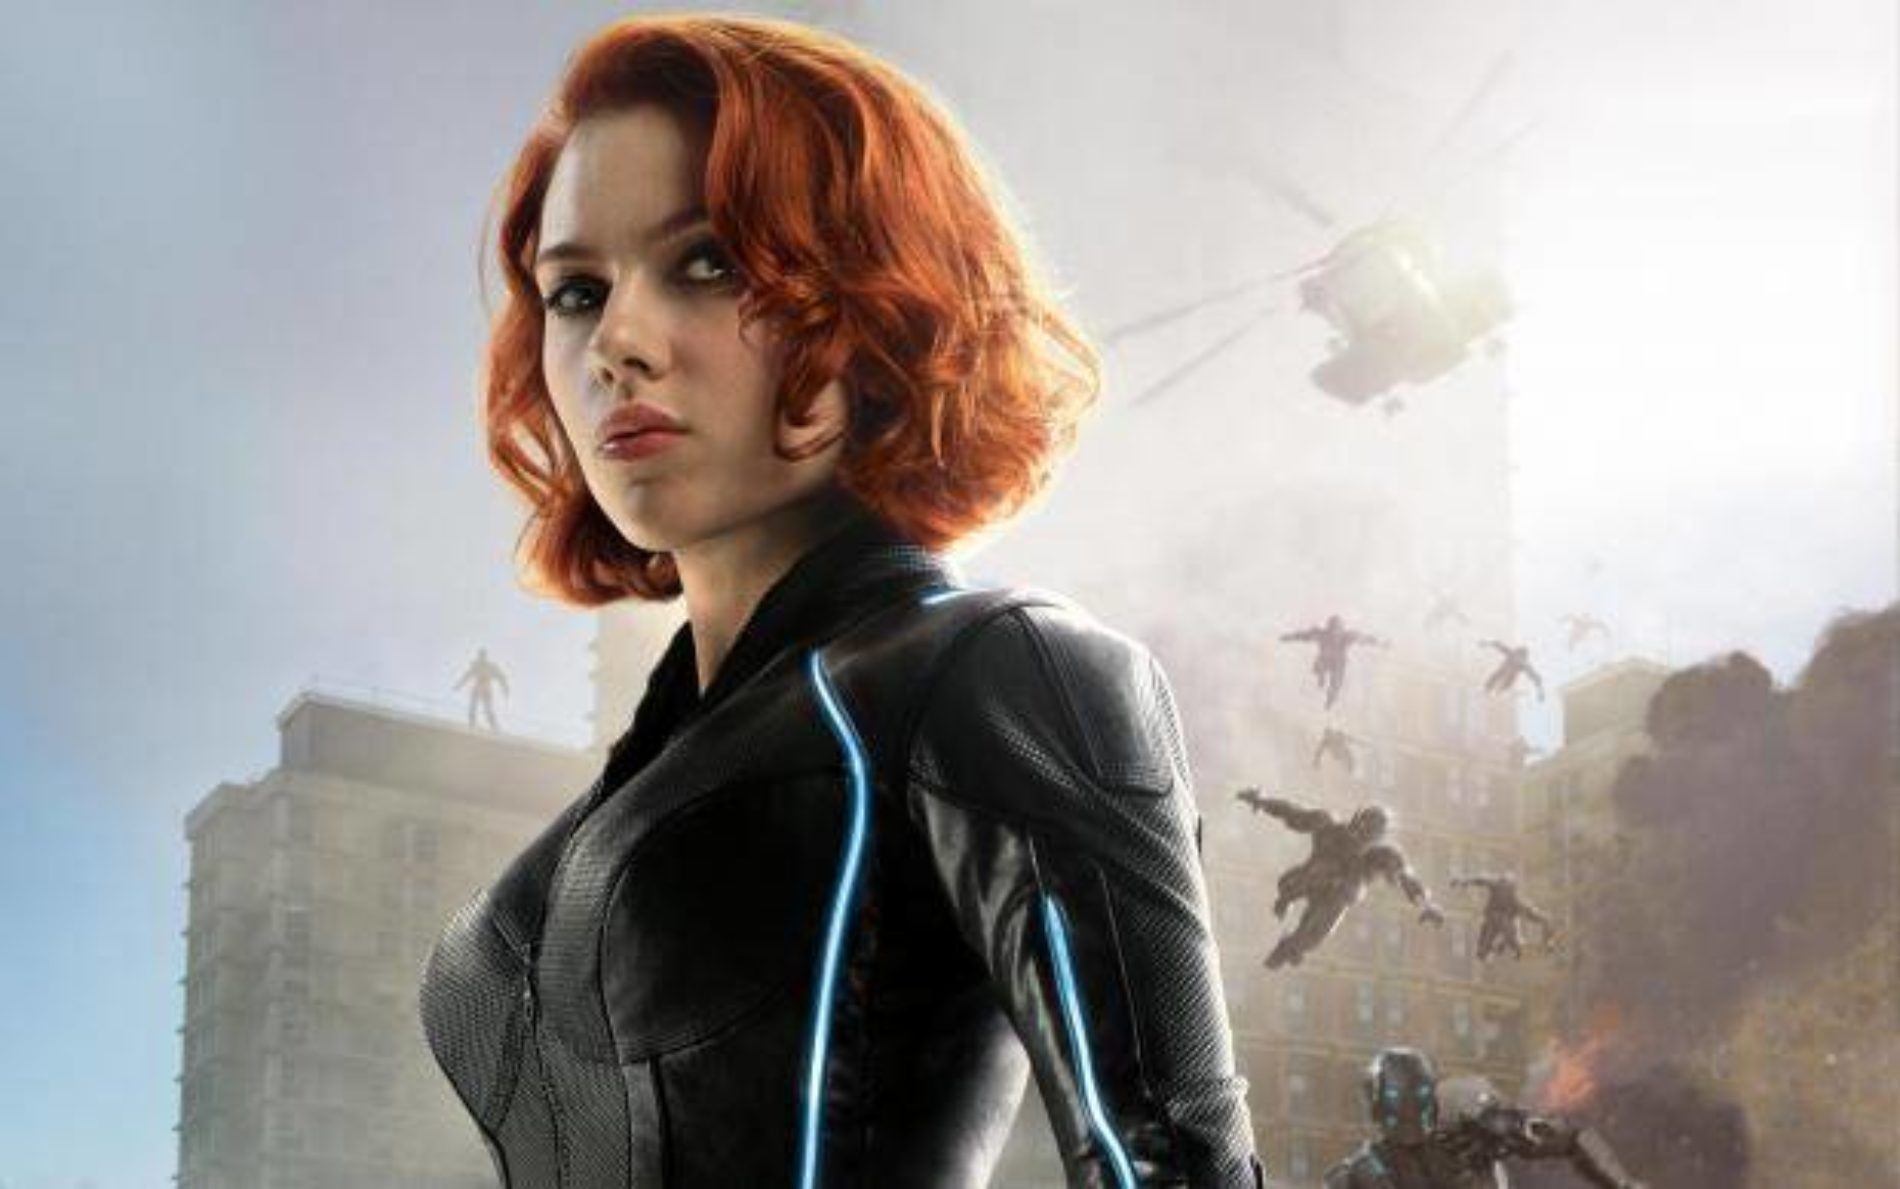 A Black Widow Movie is finally getting made